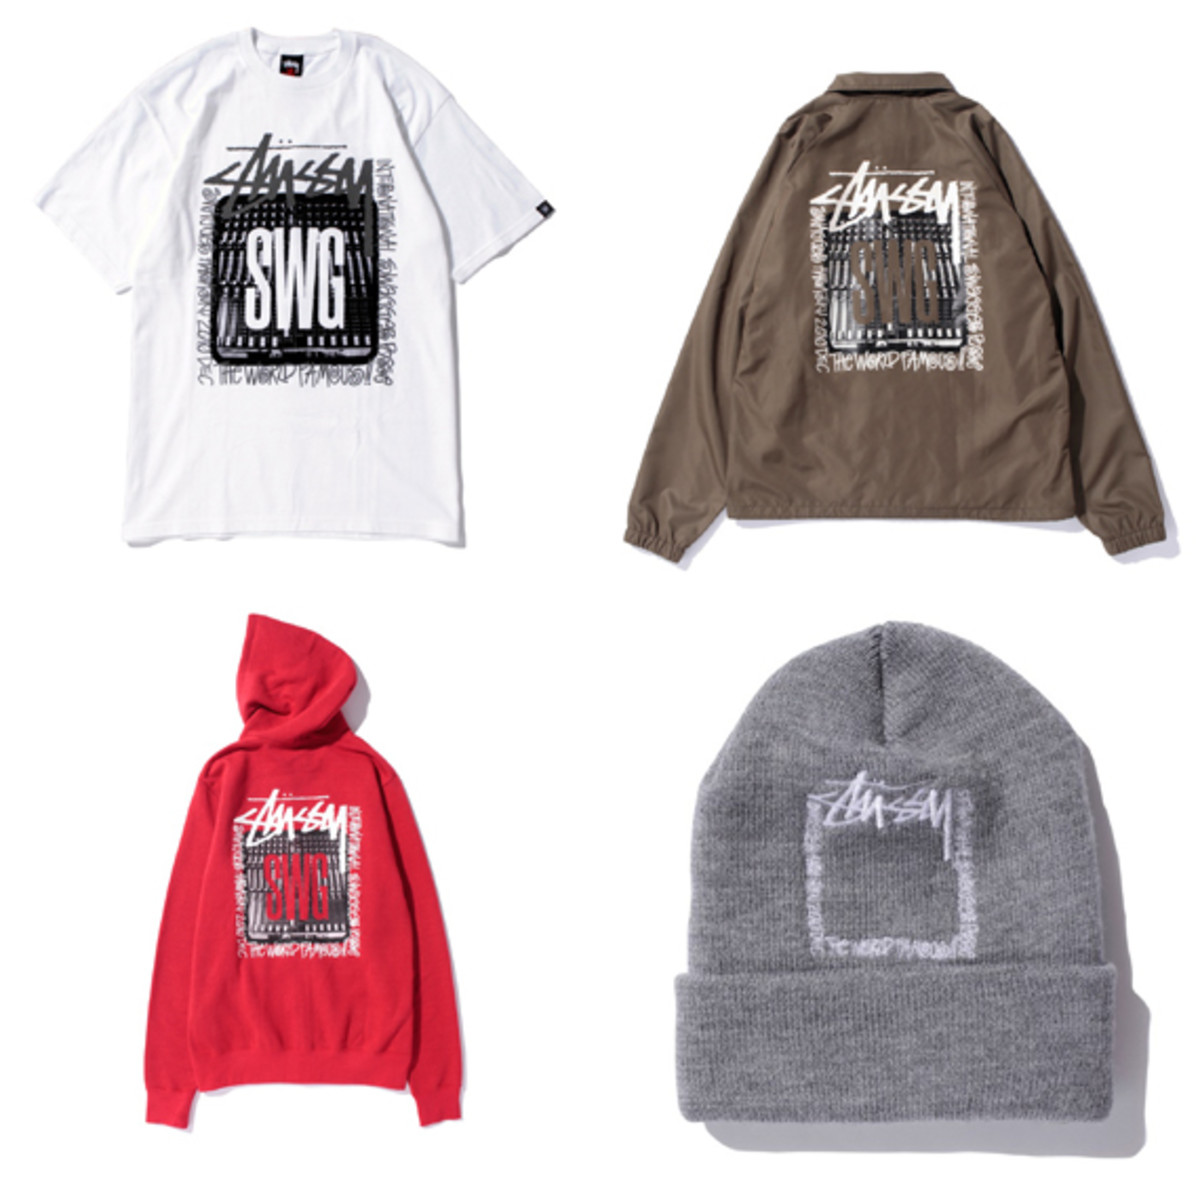 de9ca0ab67 SWAGGER x Stussy – New Harajuku Store Opening Collection - Freshness Mag